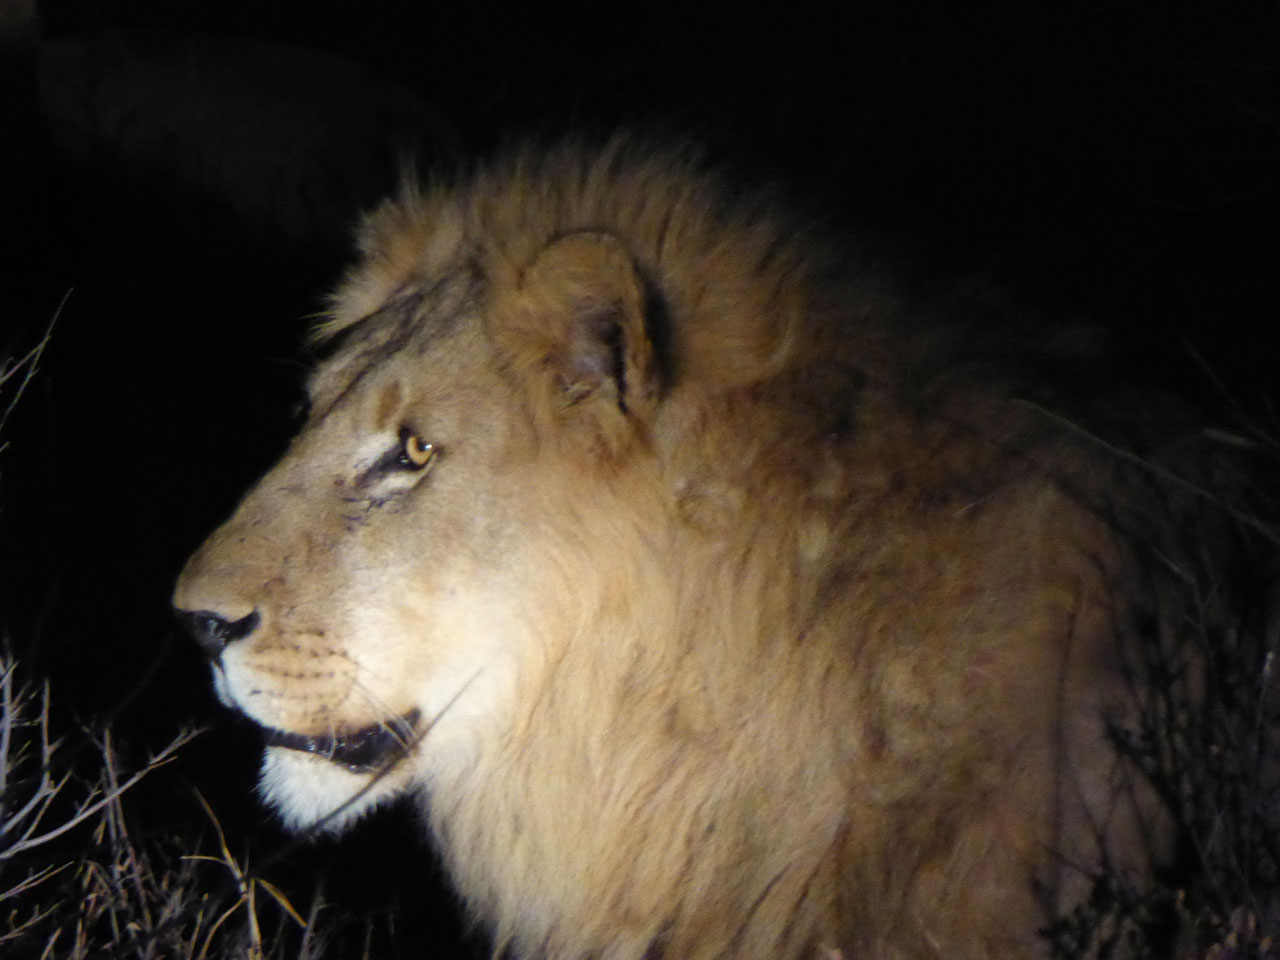 Male lion in Madikwe Game Reserve, South Africa